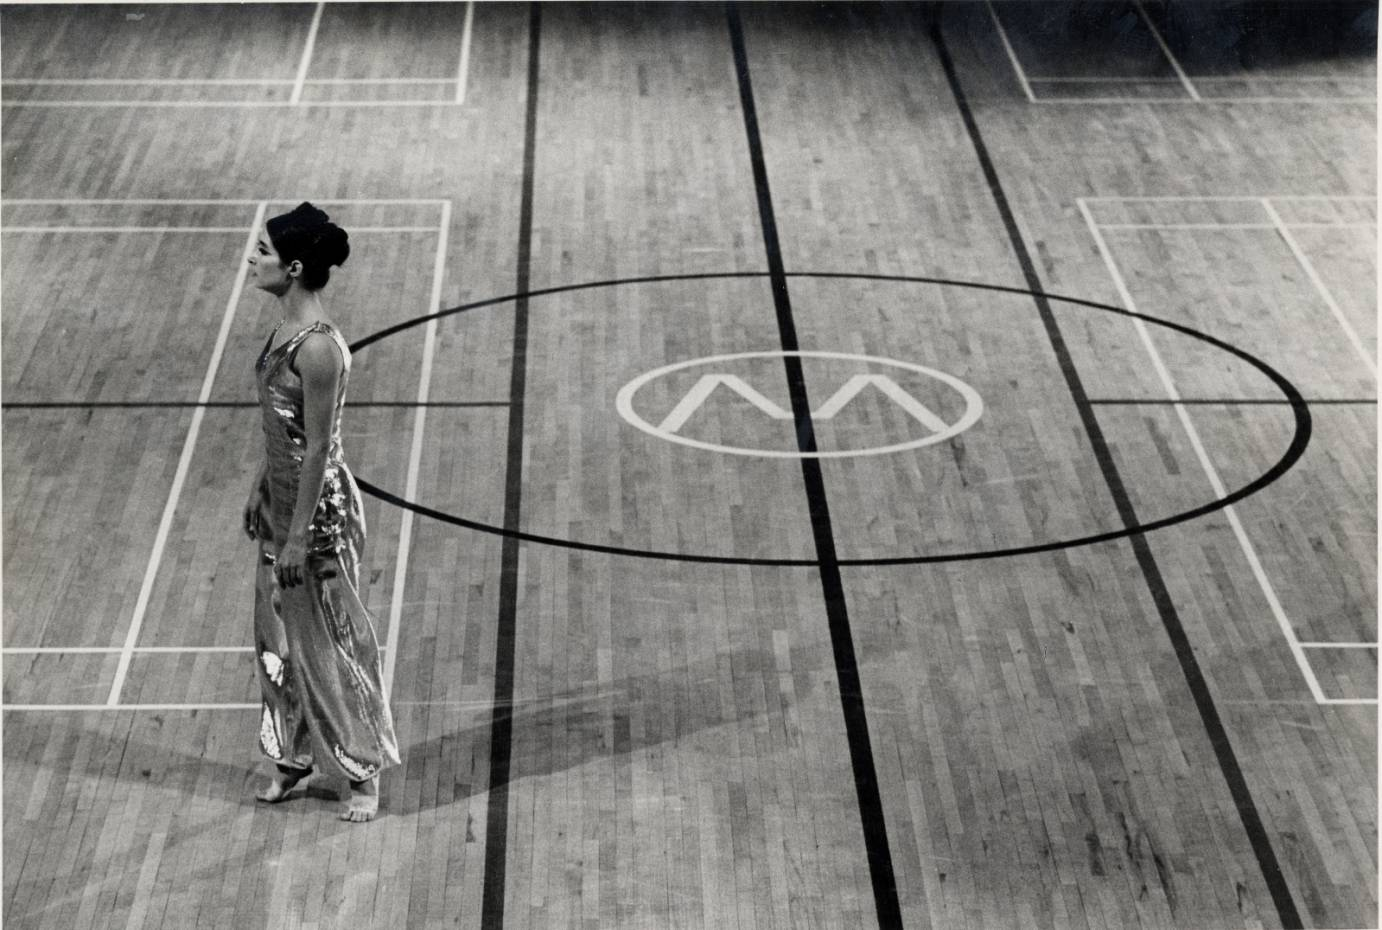 A woman stands in relve in side profile on basketball court. She's barefoot and wears an iridescent costume.